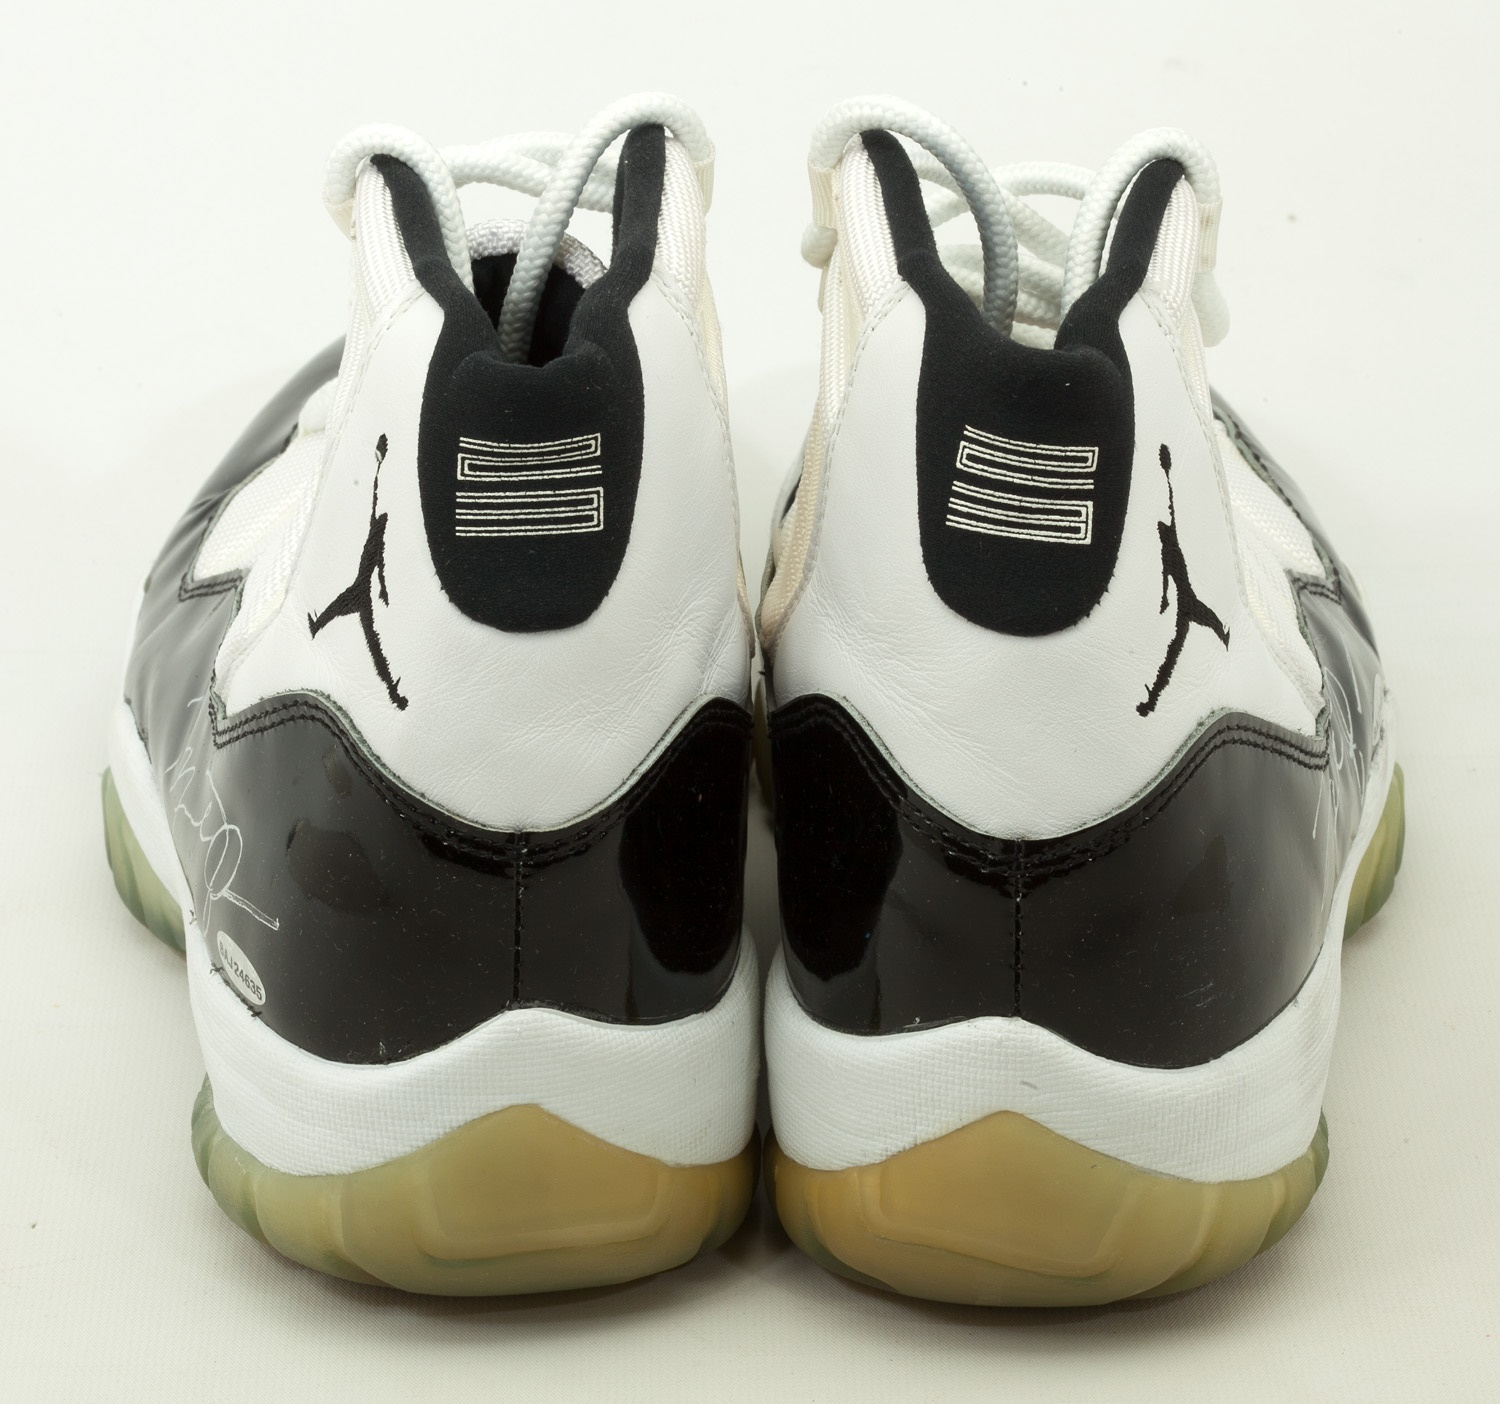 finest selection 0d207 524cf Air Jordan 11 Concord Game Used Auction | Sole Collector